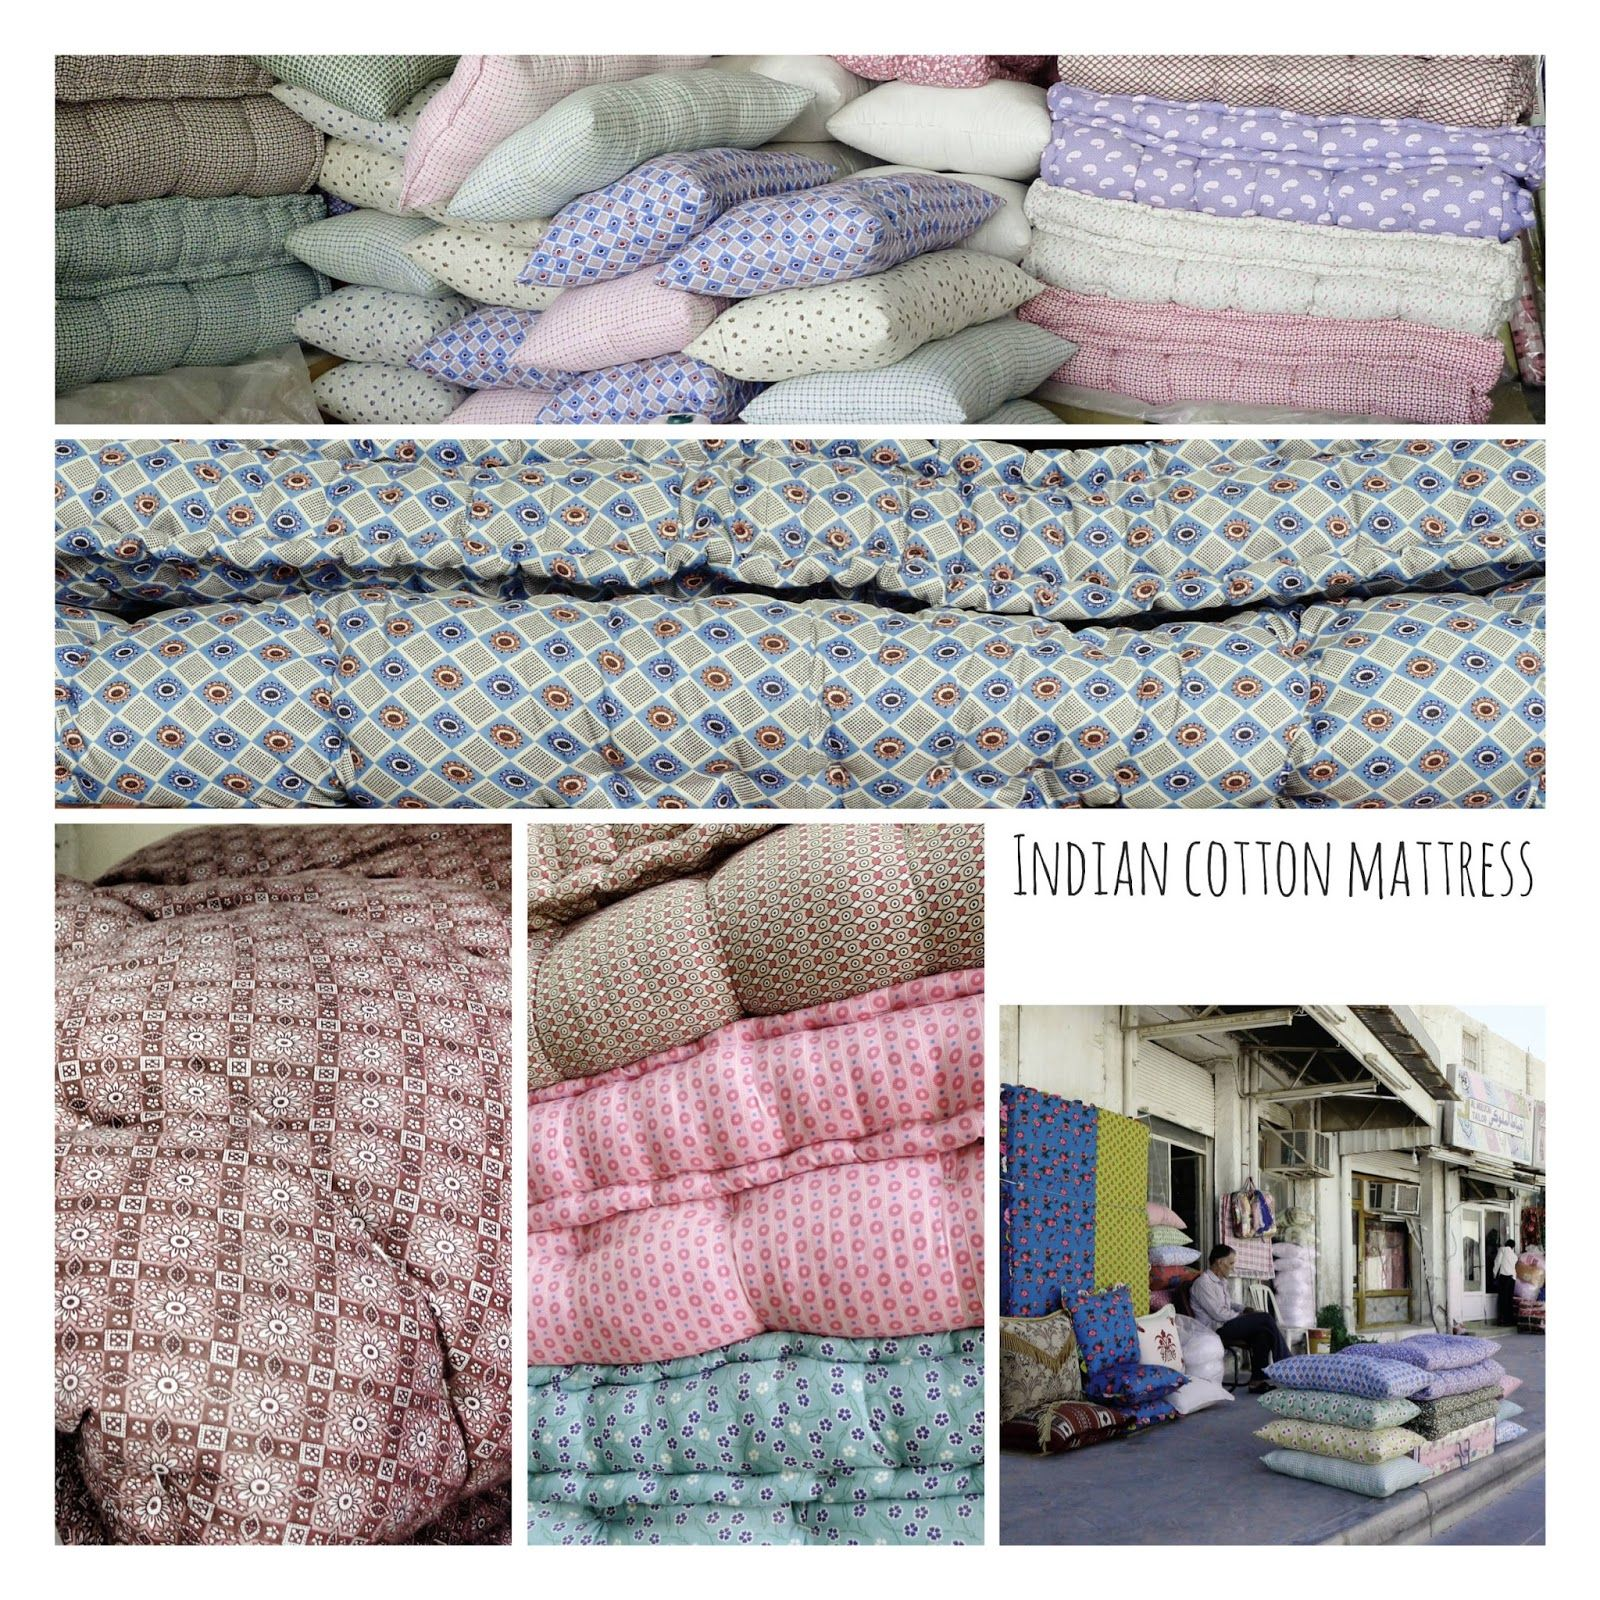 Pigtails Indian Cotton Mattresses Gaadi Cotton Mattress Indian Cotton Mattress